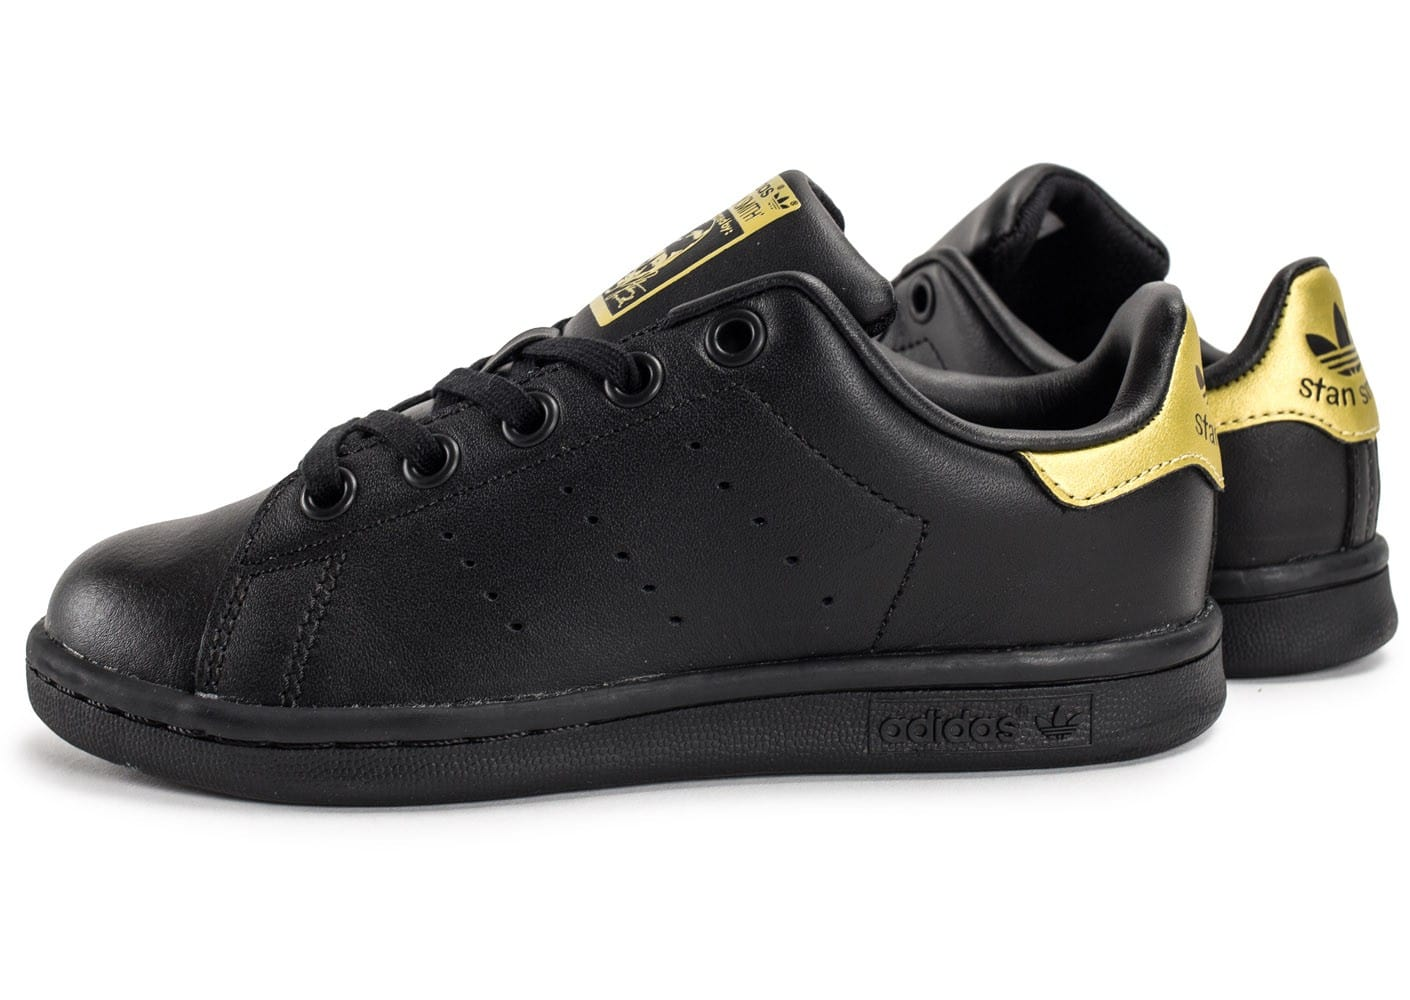 Adidas Stan Smith Enfant Noire Et Or Chaussures Adidas